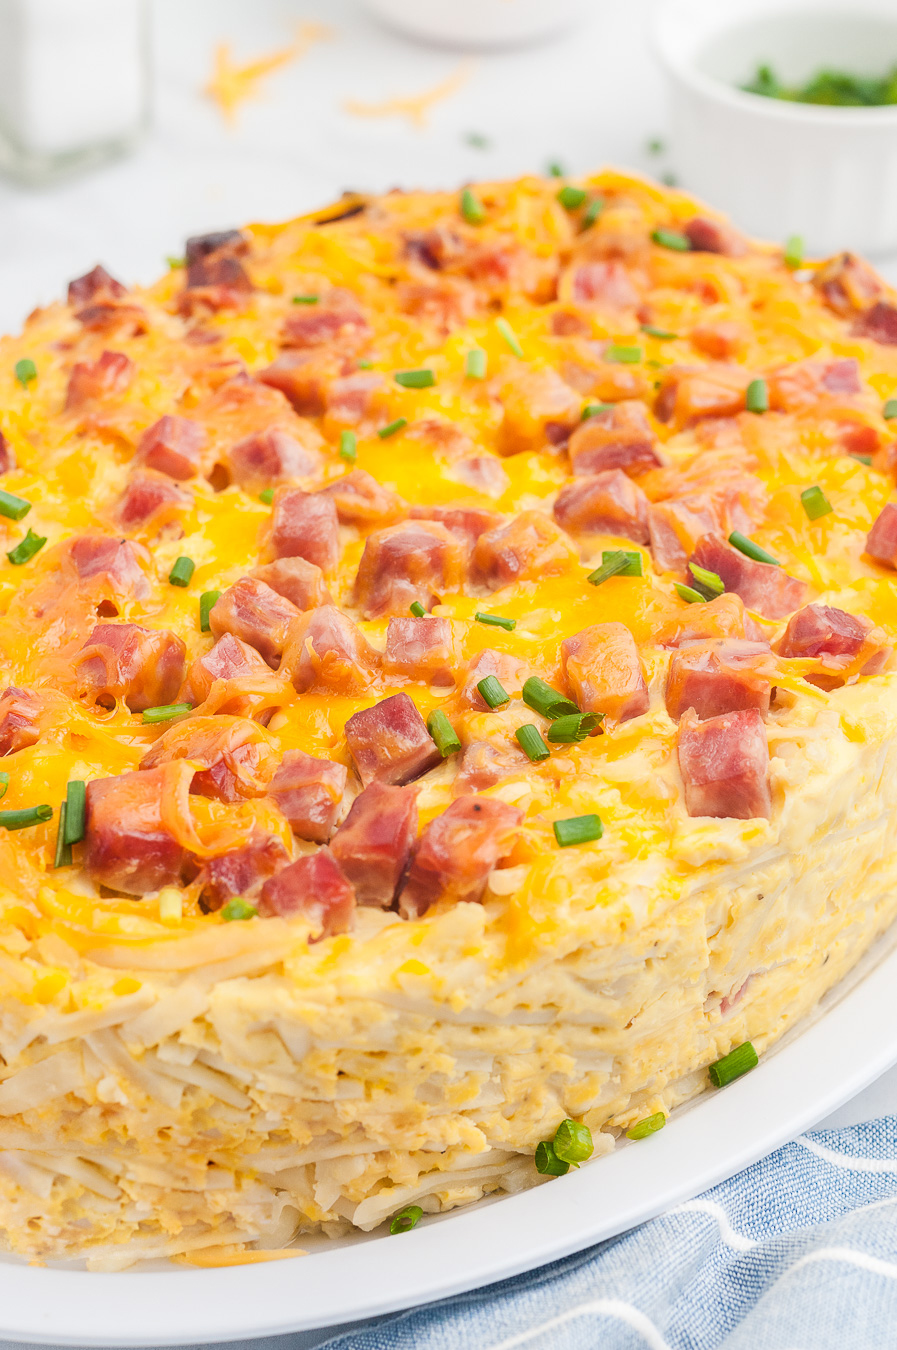 Ham and cheddar breakfast casserole prepared in an oval slow cooker, placed onto a plate for serving.